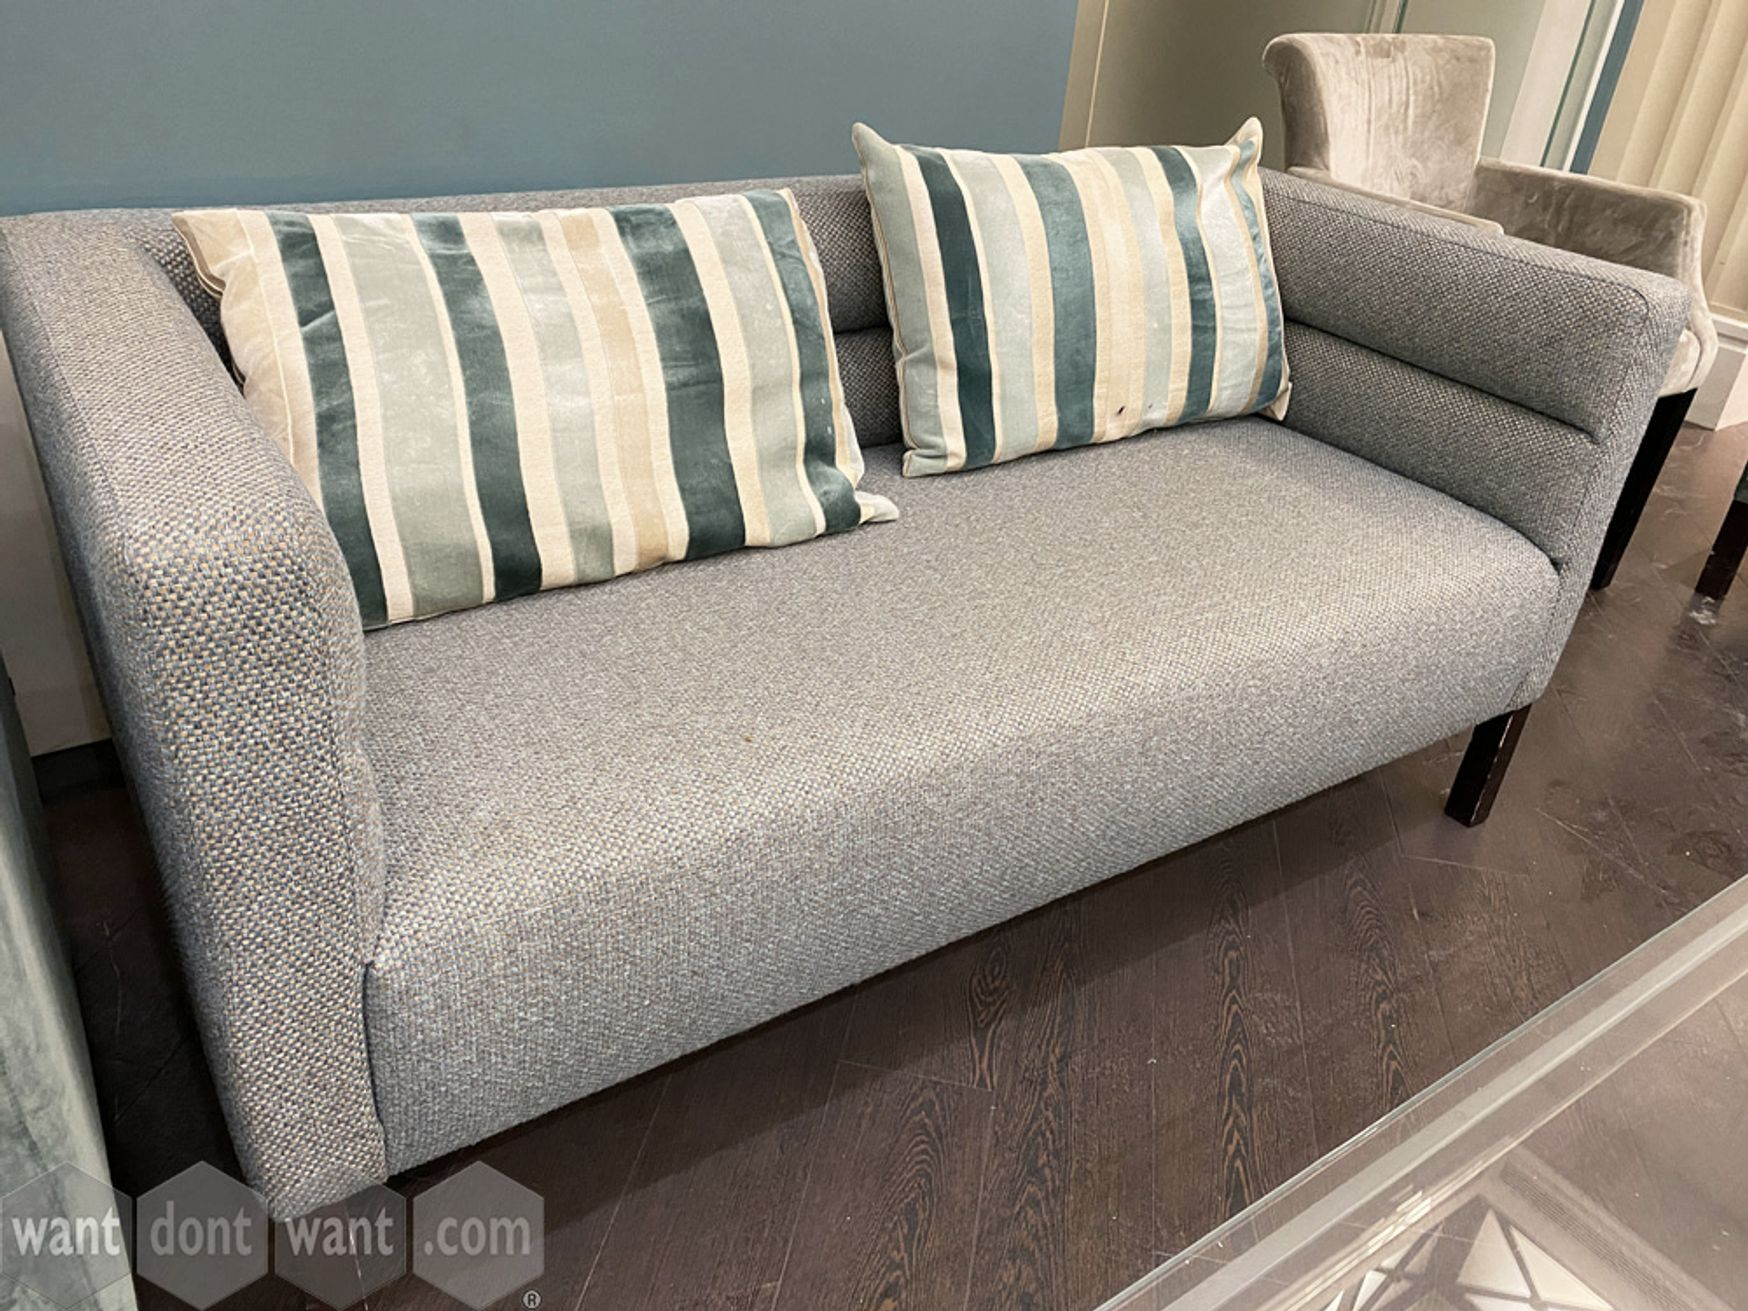 Used 2-seat sofa upholstered in multi-fleck fabric: 1500mm w